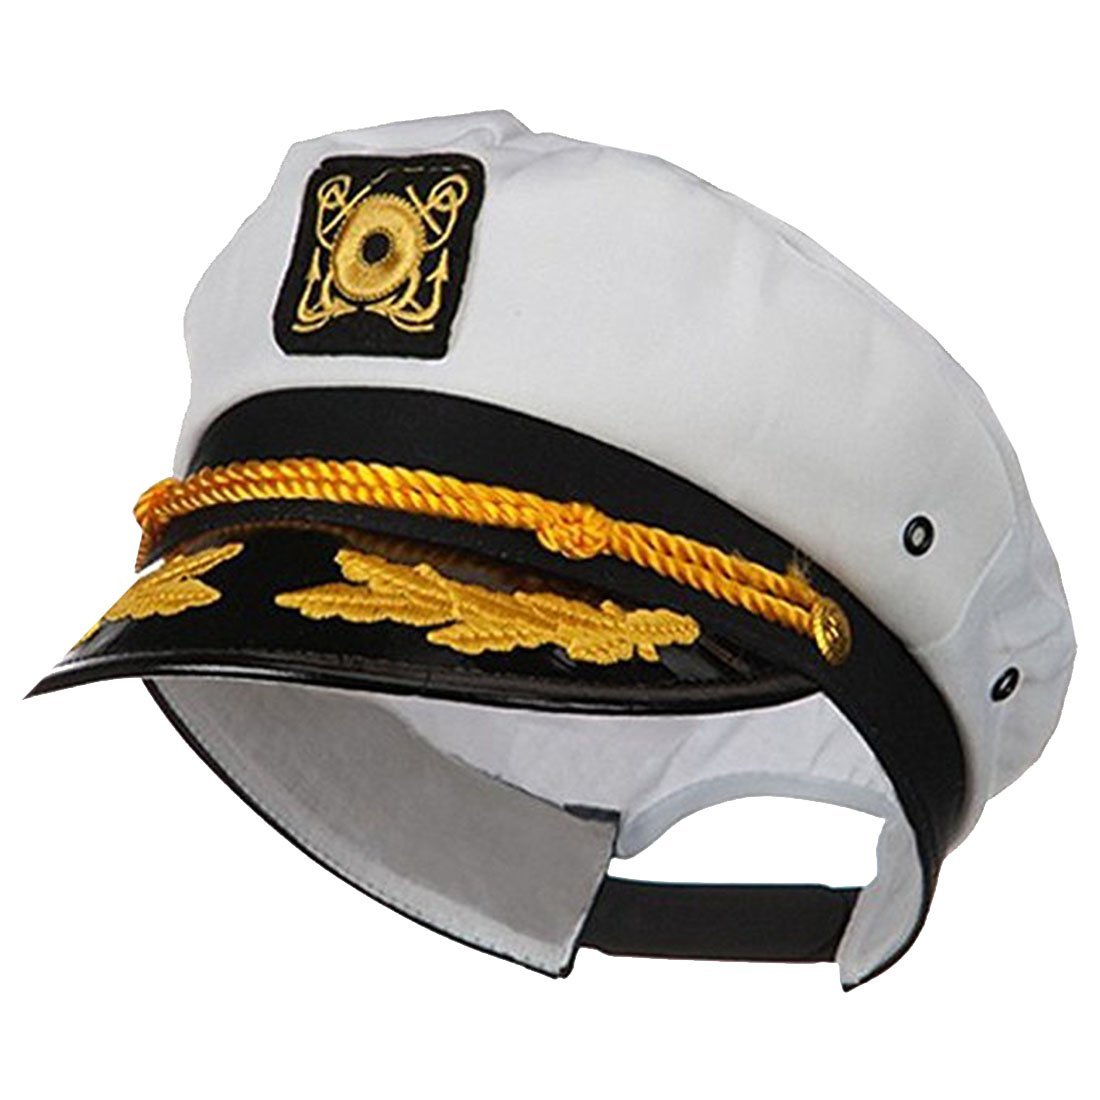 d9f366bd298 Get Quotations · Jacobson Hat Company Adult Ship Navy Officer Yacht Sea  Skipper Captain Hat Cap Costume Accessory